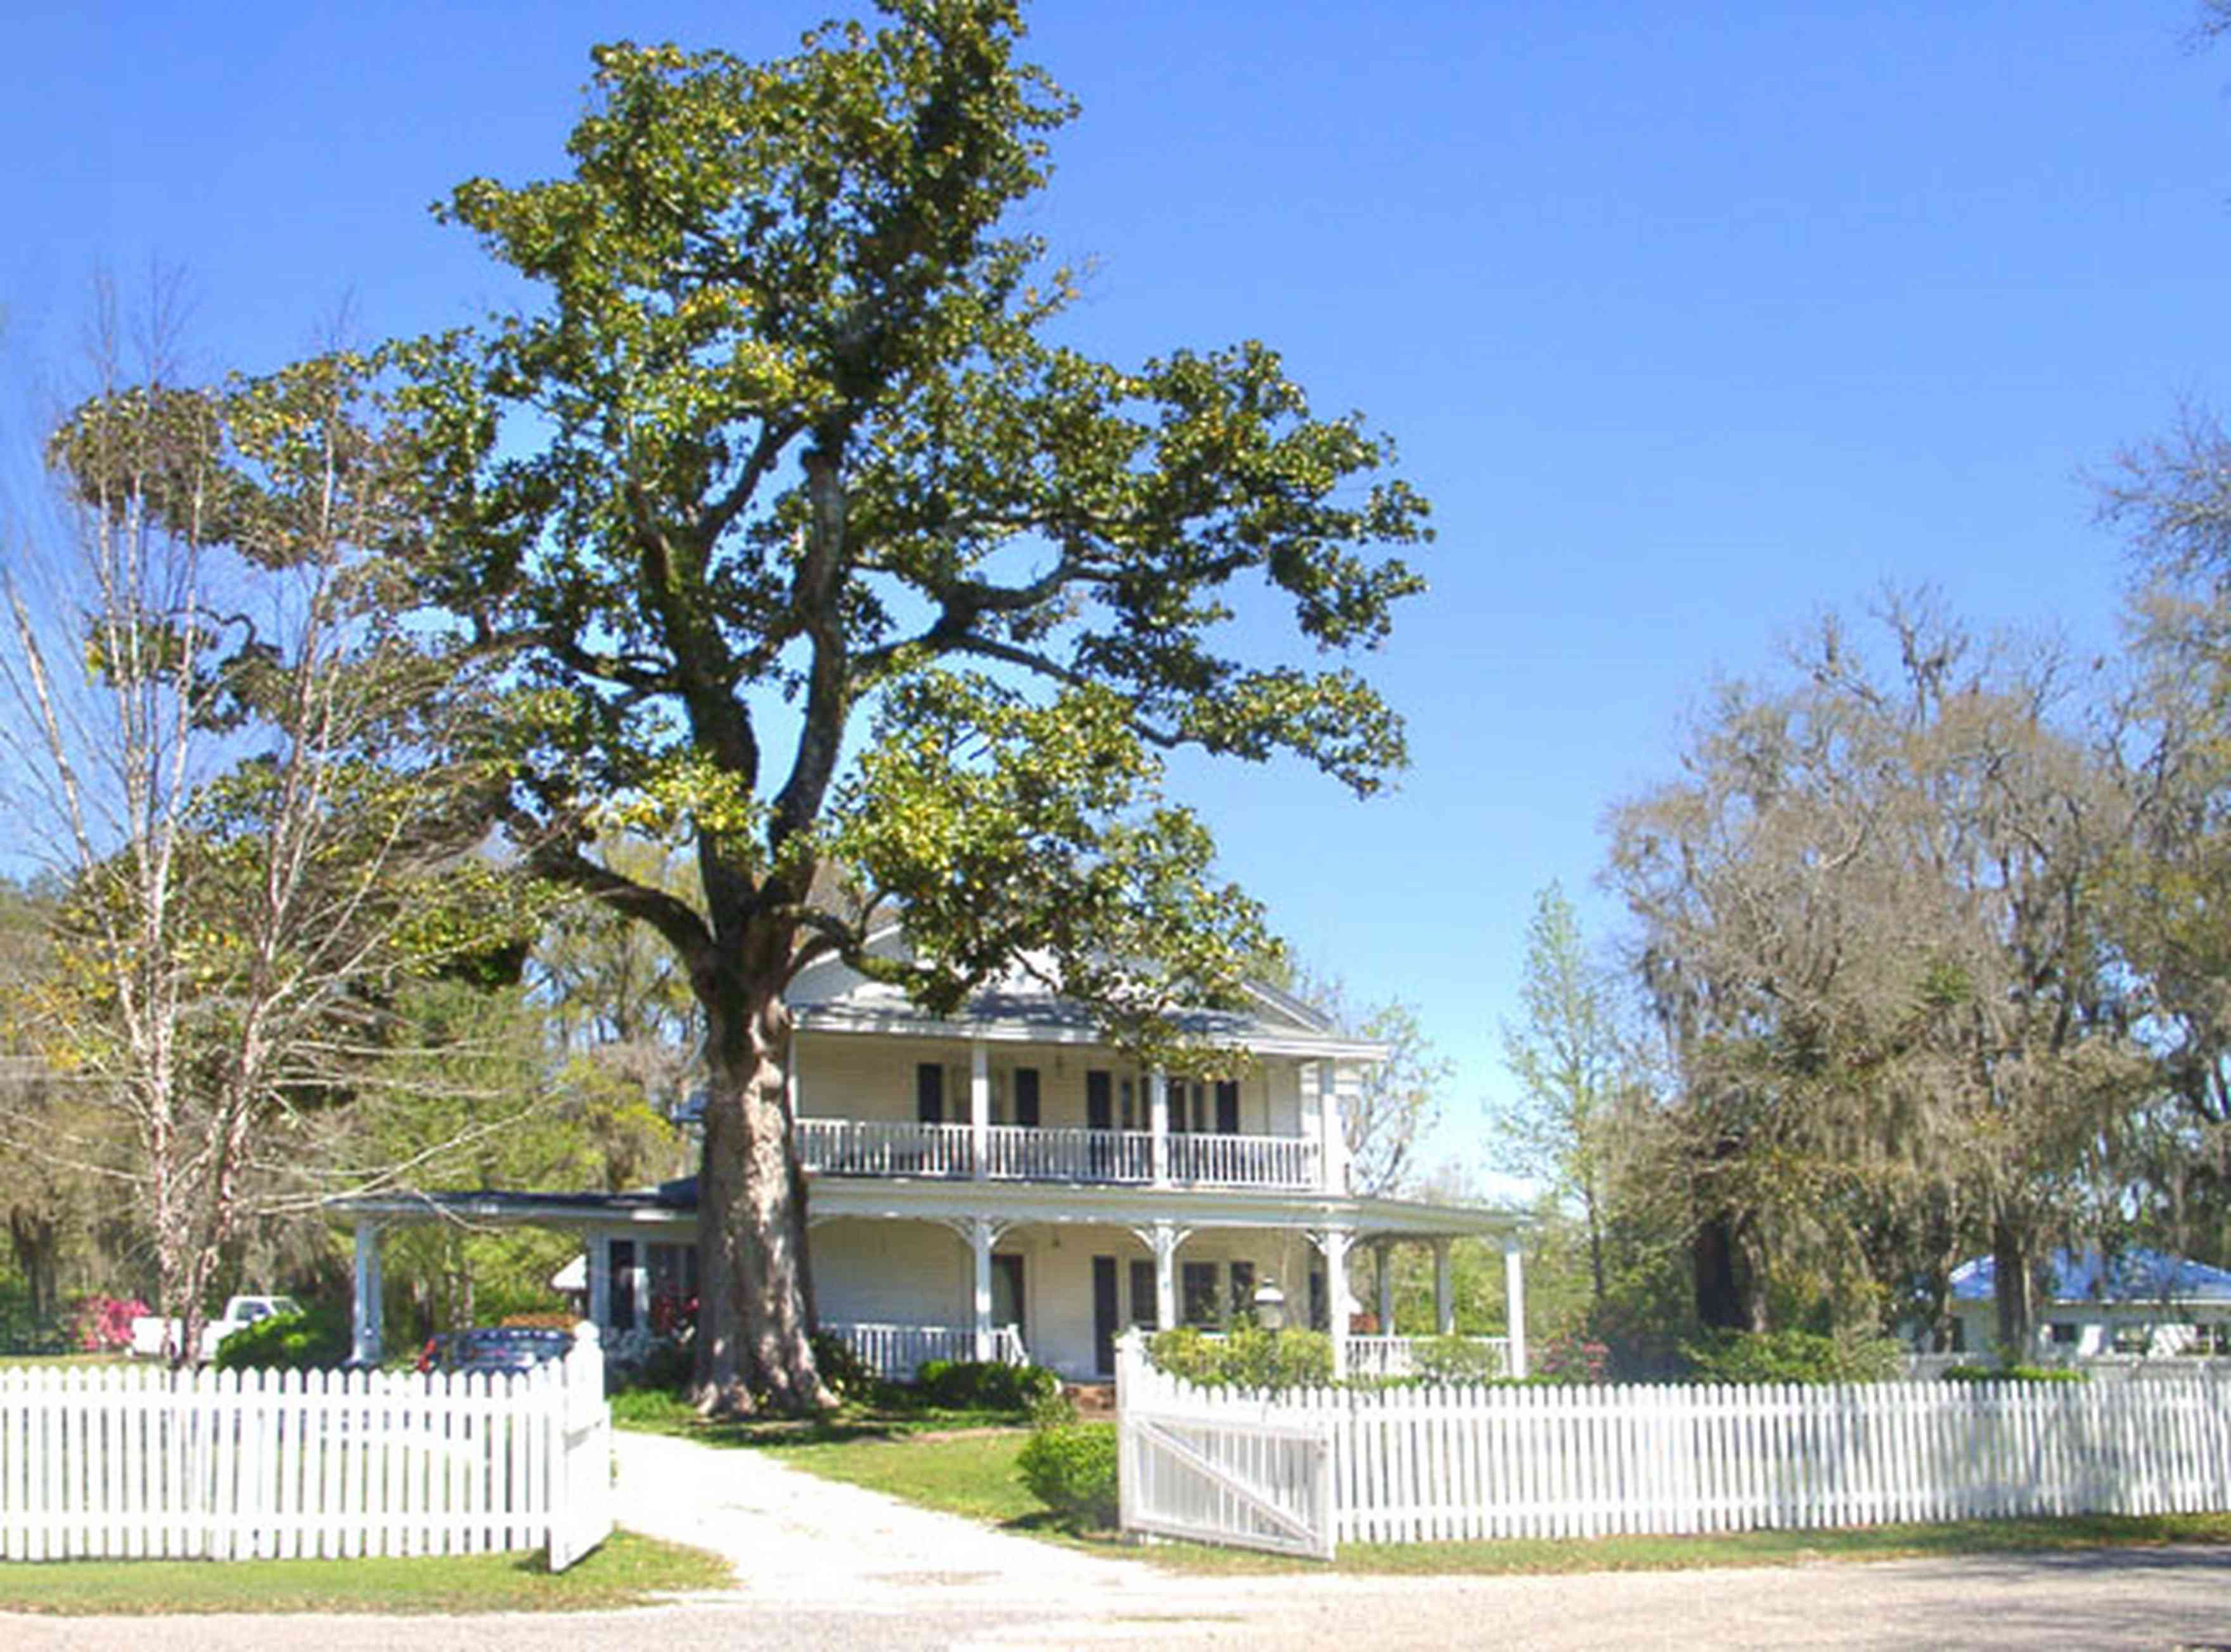 Bagdad:-Creary-Crawford-Walsh-House_01.jpg:  magnolia tree, victorian house, picket fence,